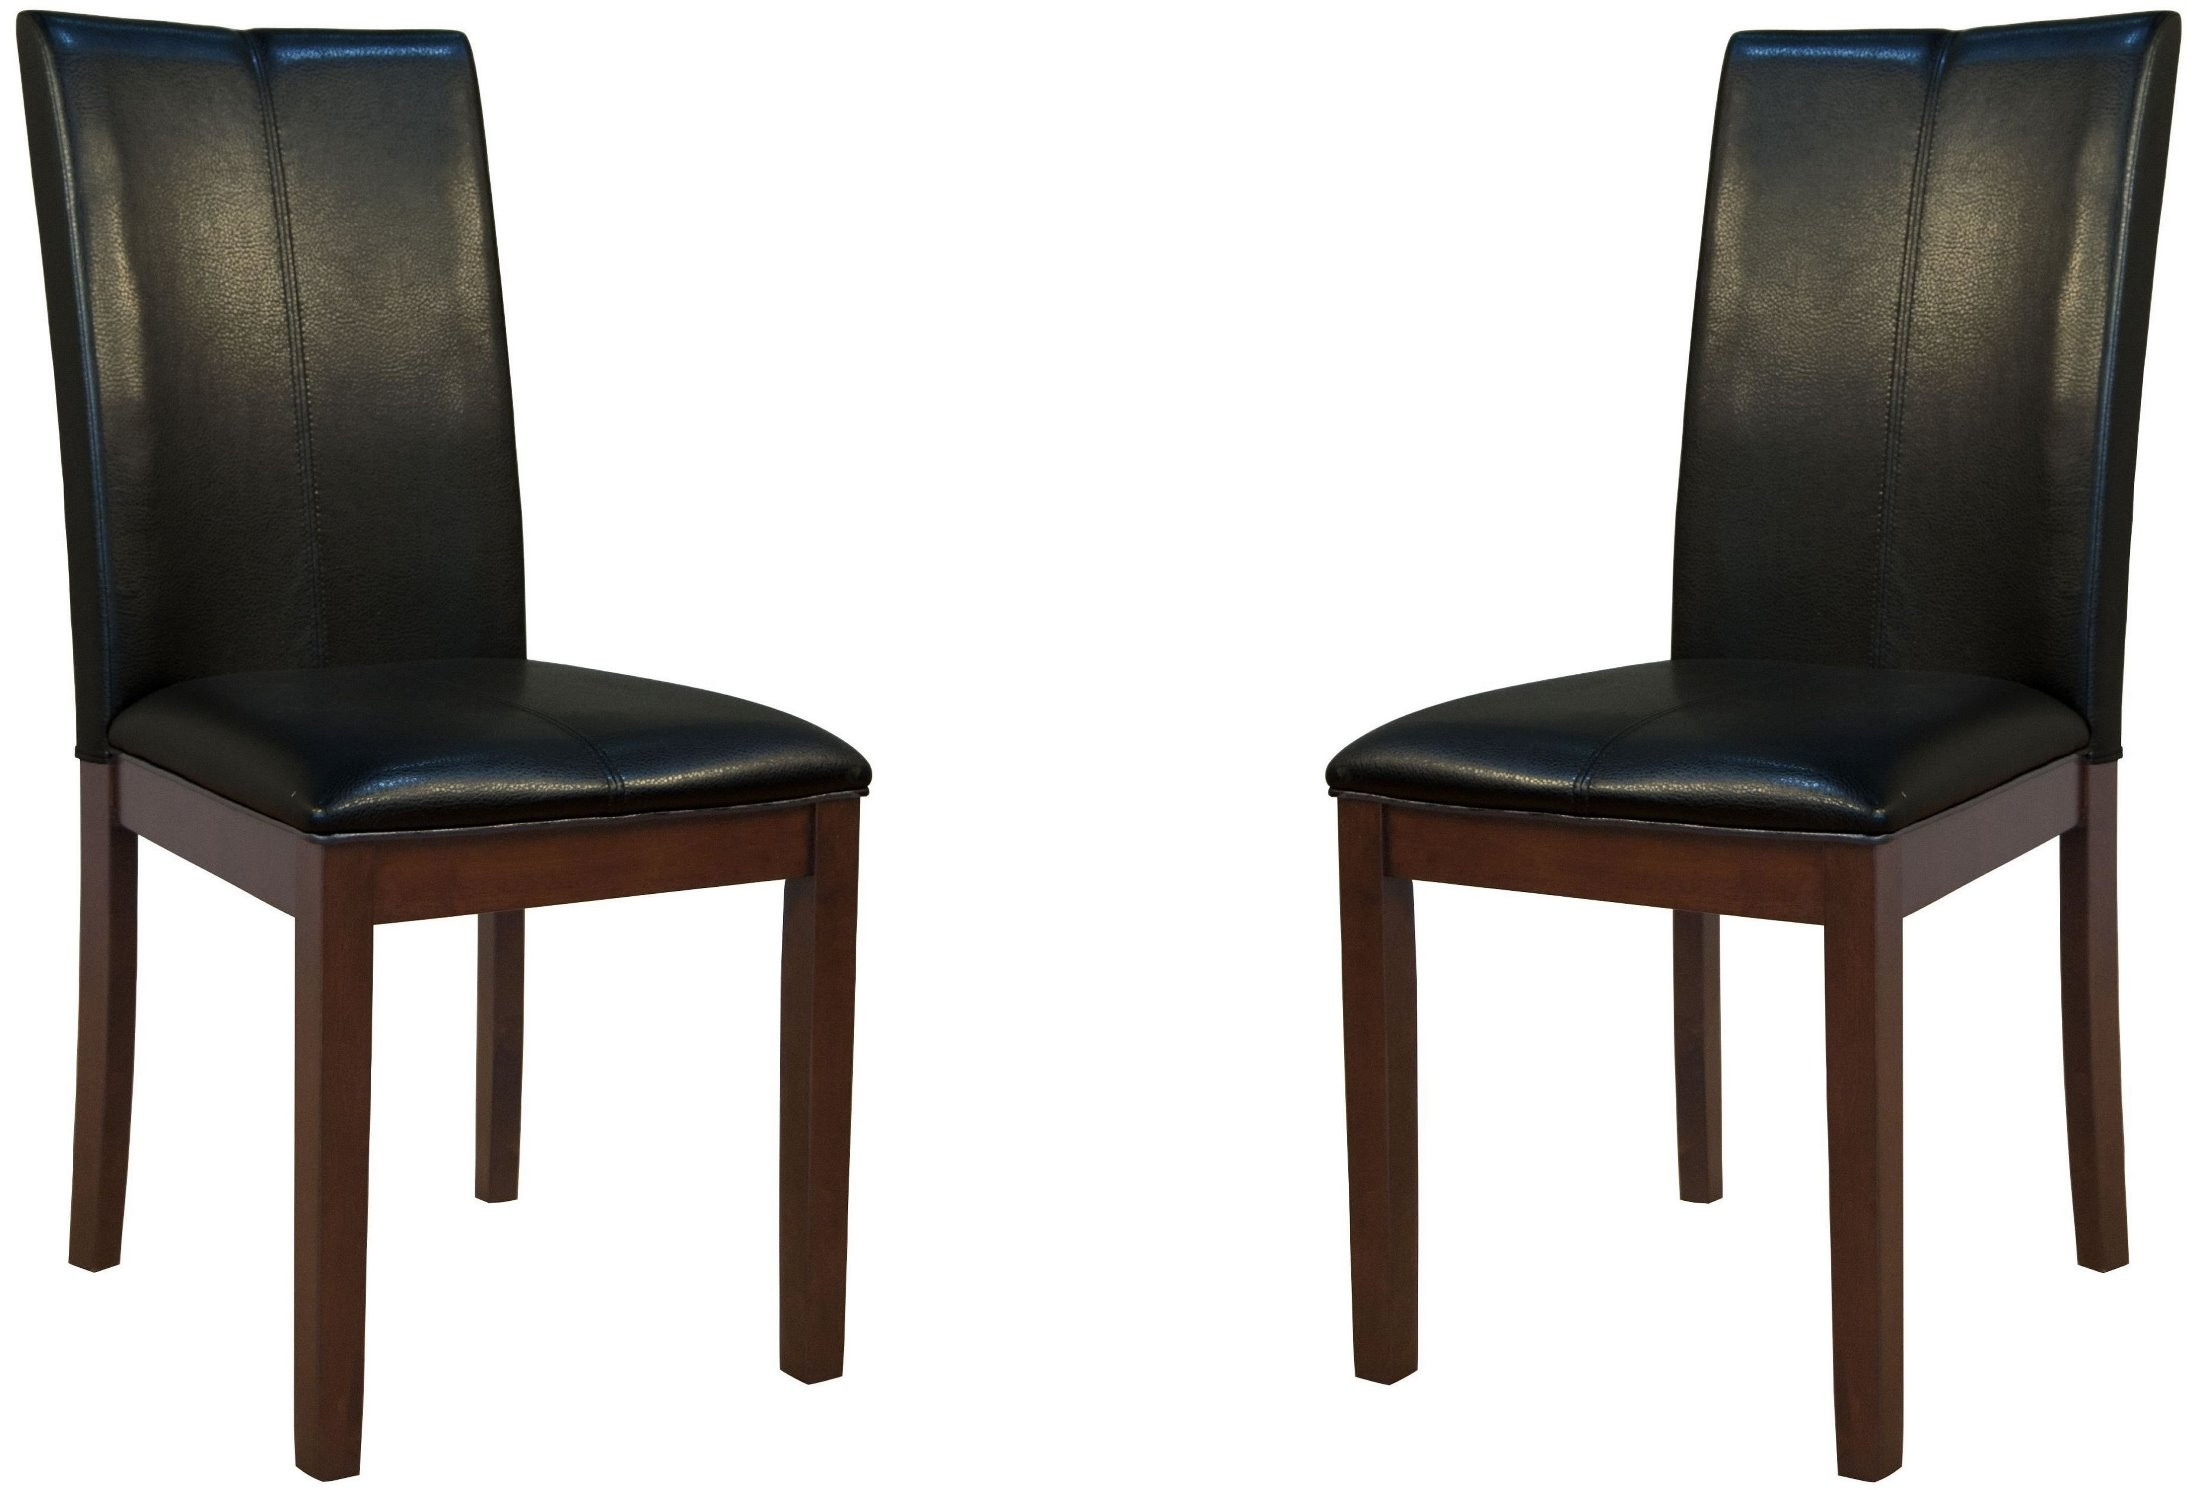 Parson Black Curved Back Dining Chair Set Of 2 PRSES221K A America